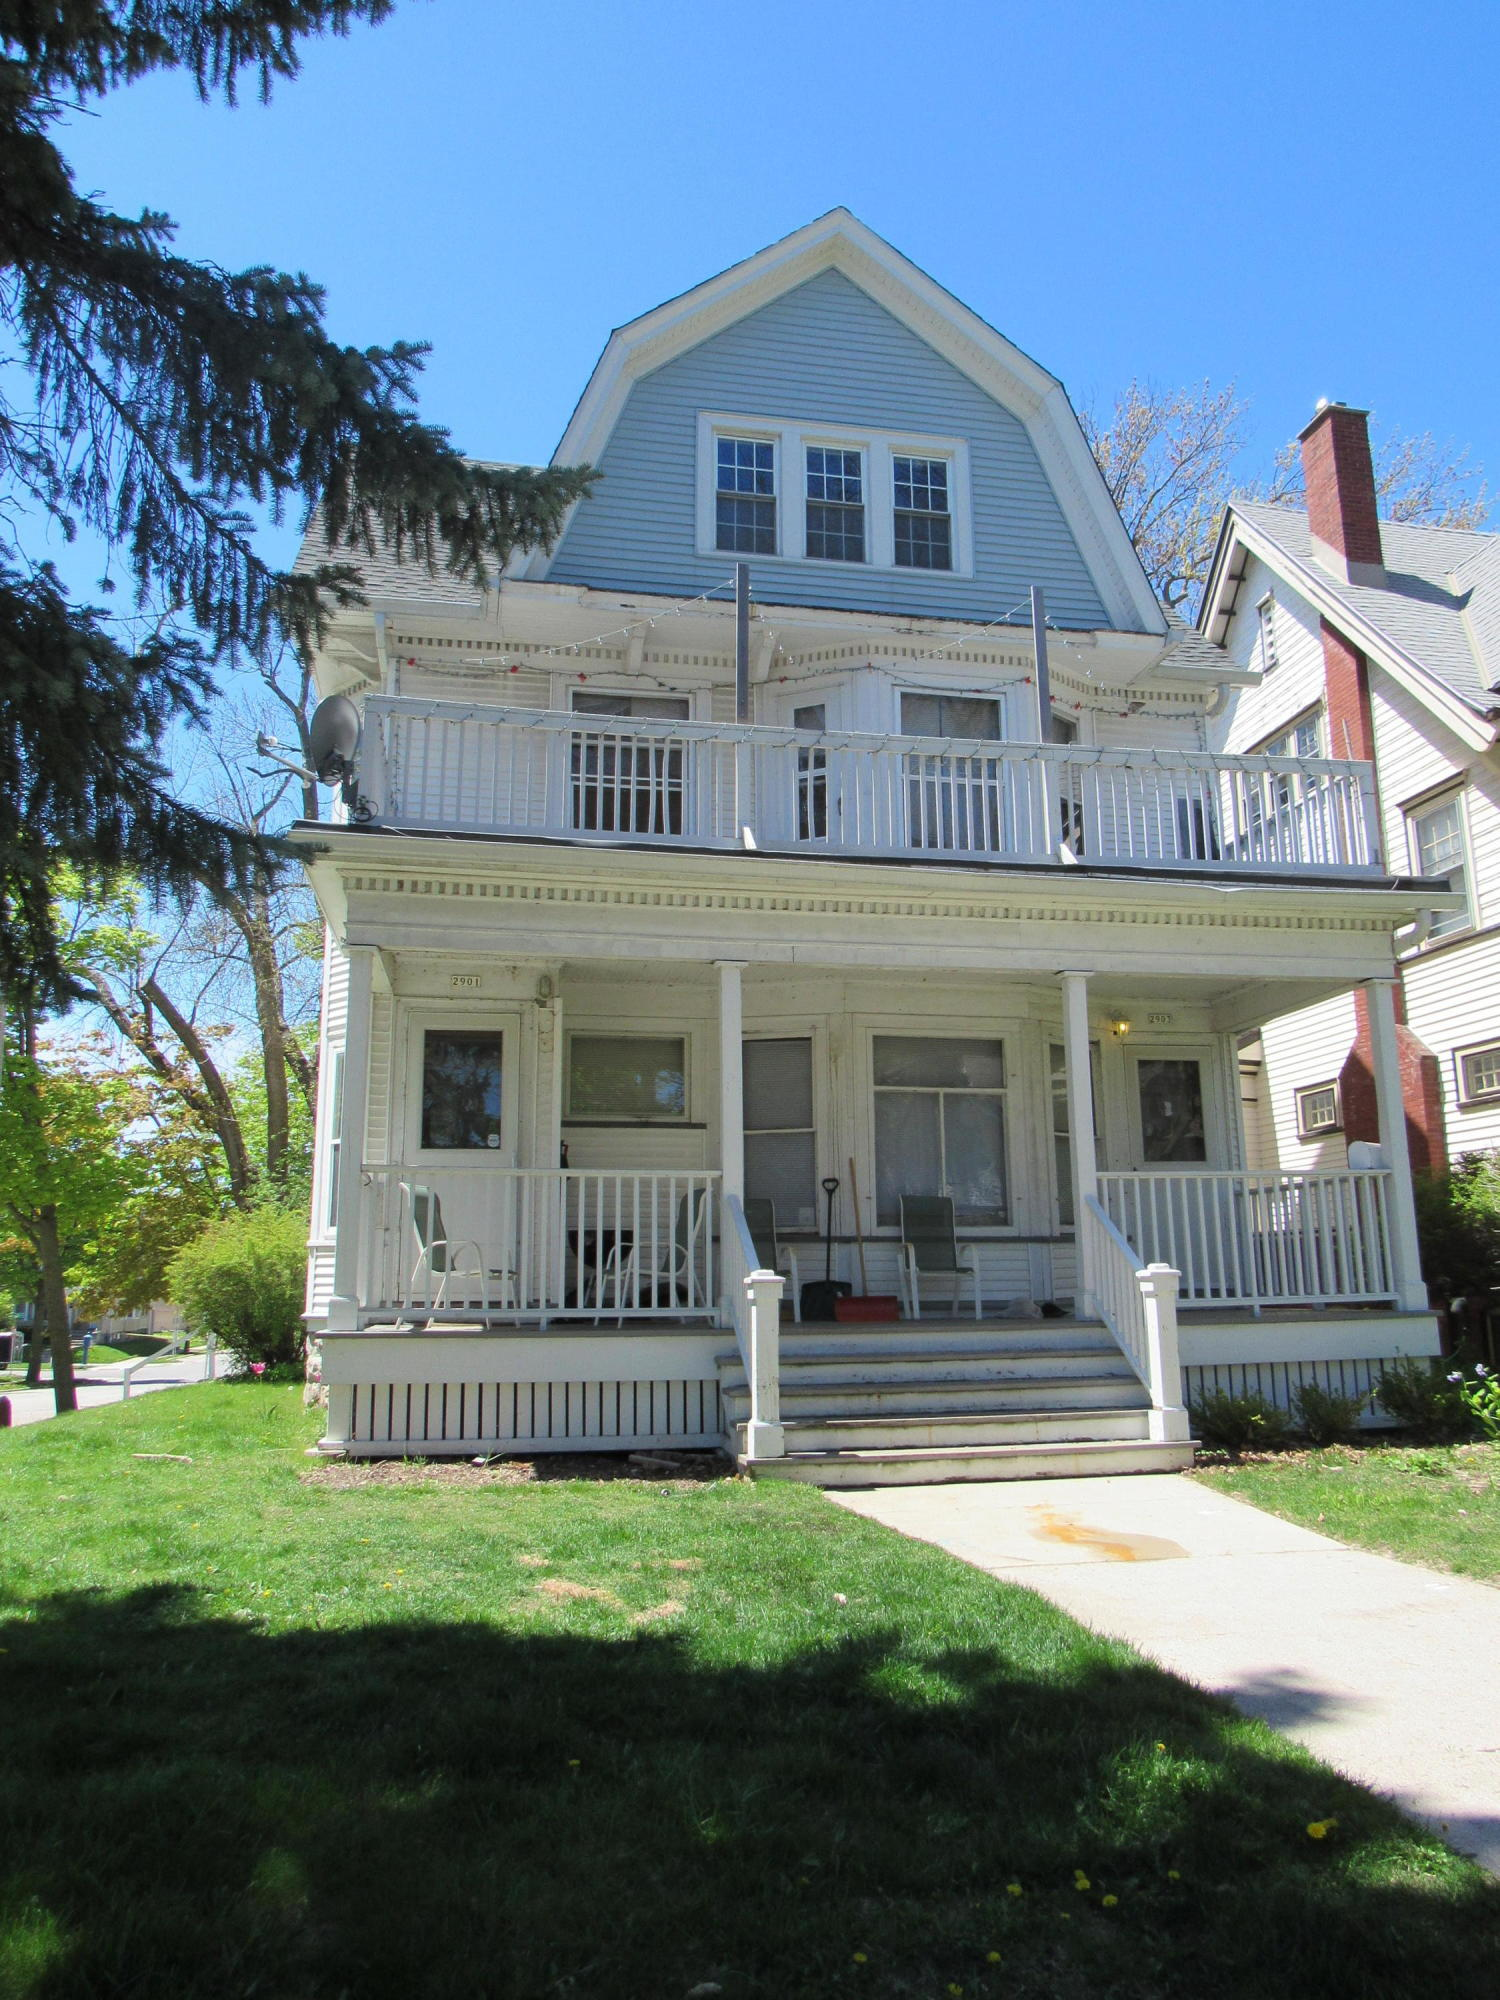 Photo of 2901 N Prospect Ave #2903, Milwaukee, WI 53211